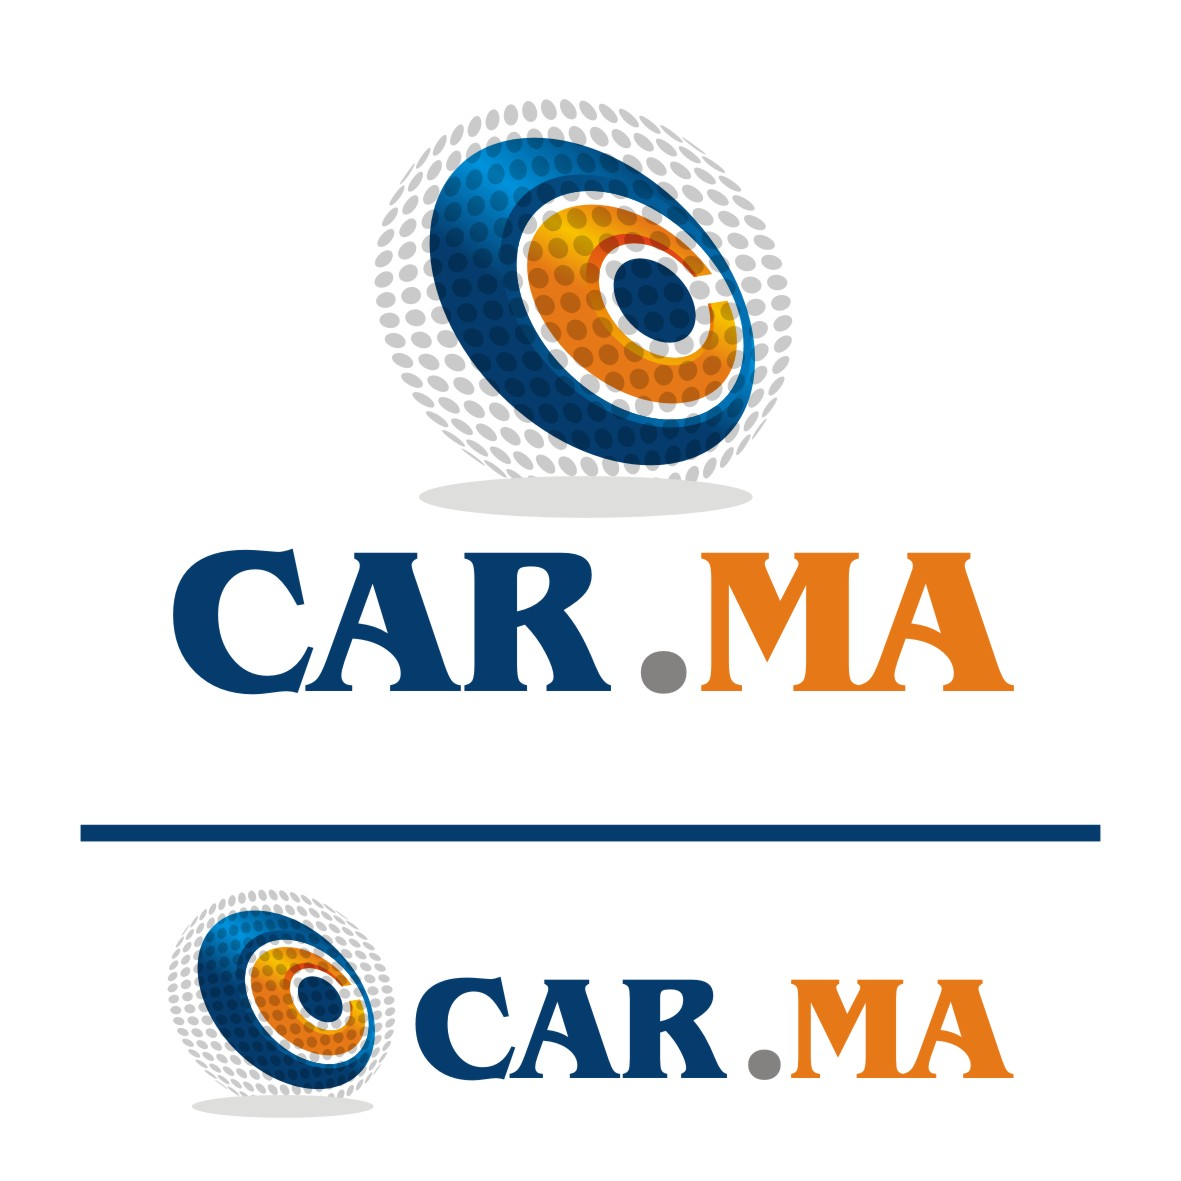 Logo Design by arteo_design - Entry No. 179 in the Logo Design Contest New Logo Design for car.ma.